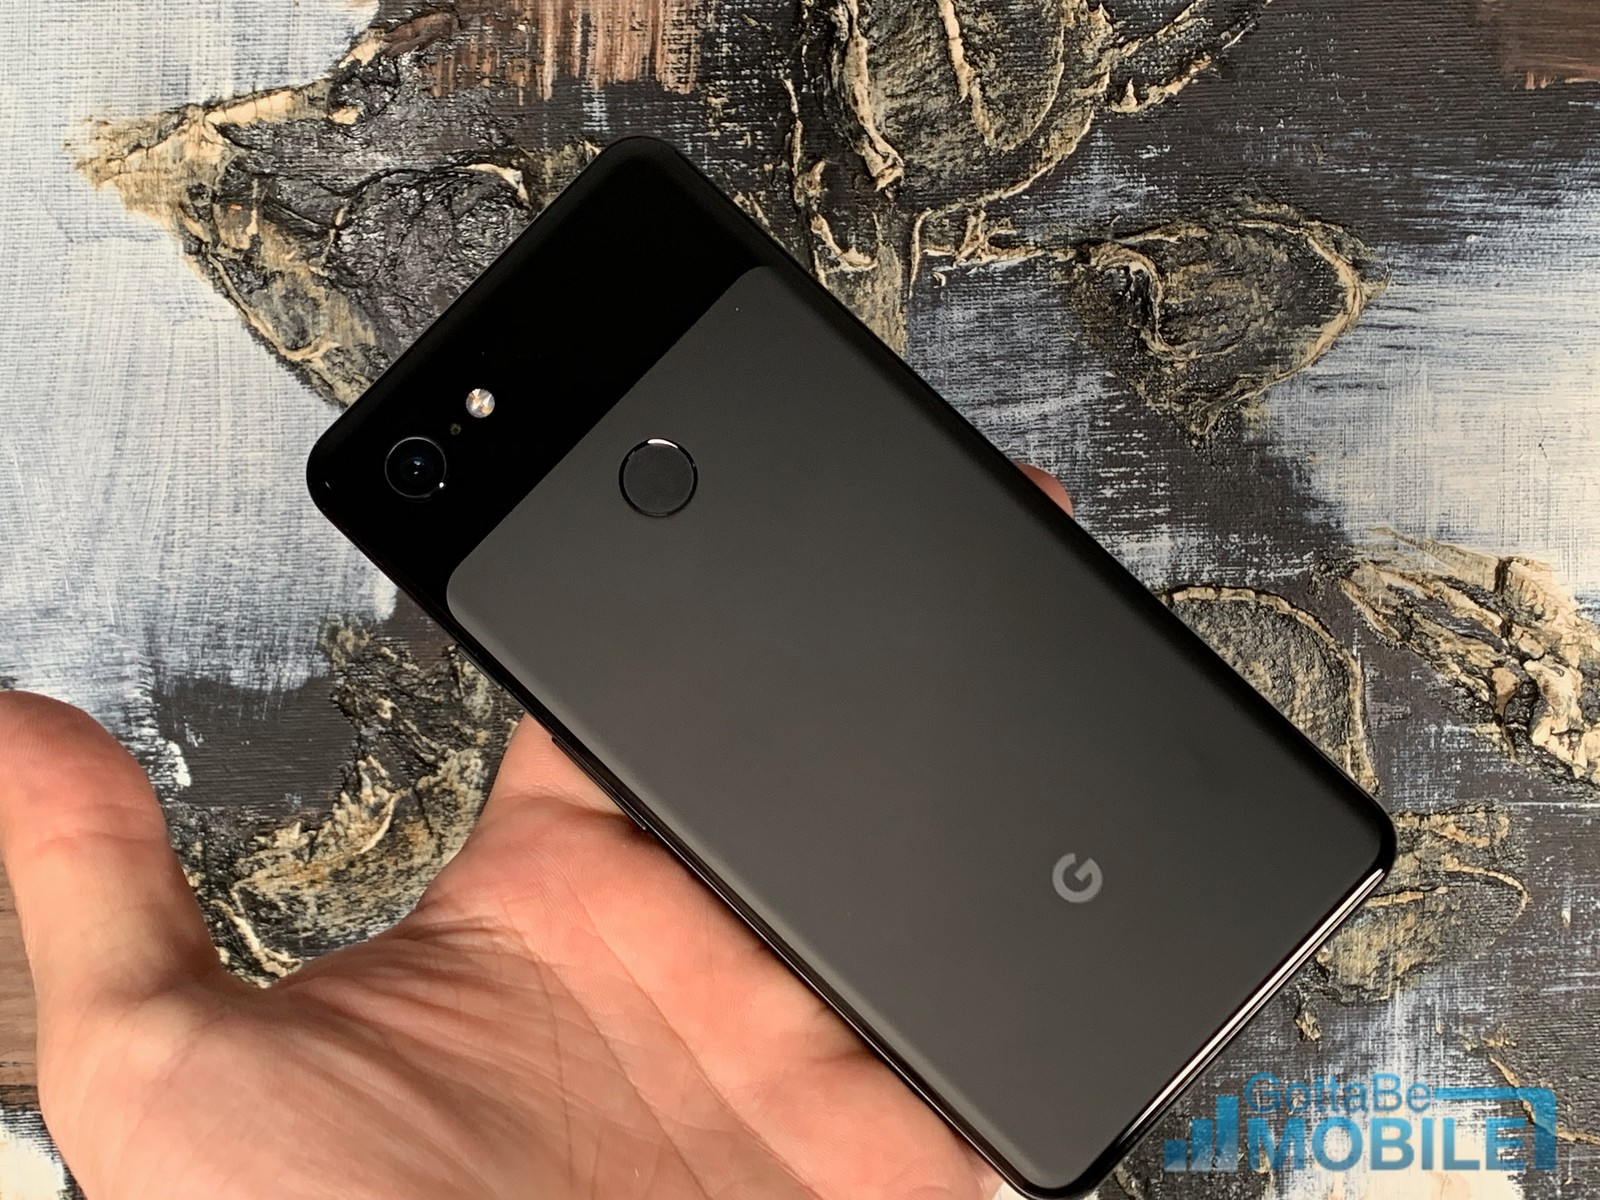 Gamevice Pixel 3 XL Works With Pixel 2 Devices